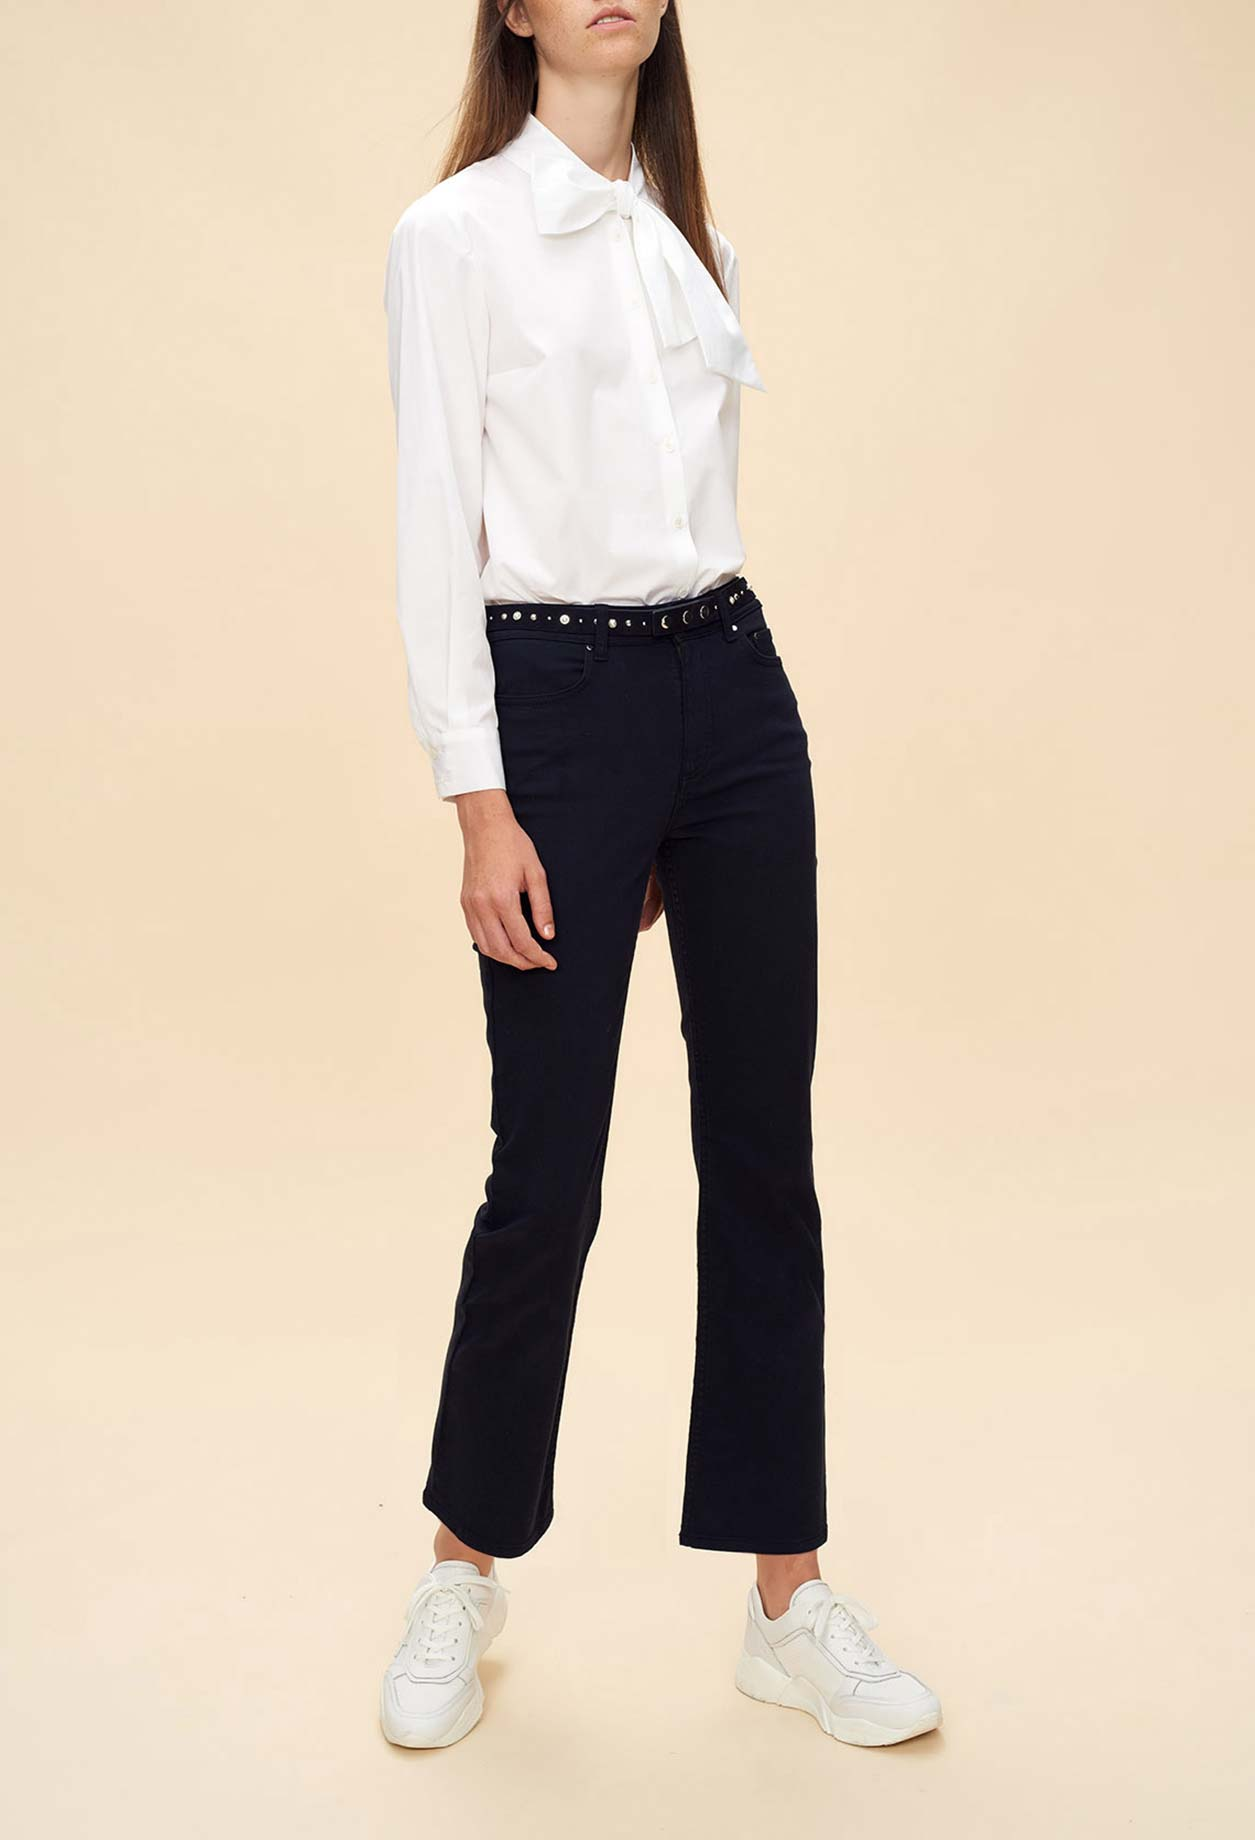 Cropped navy blue jeans